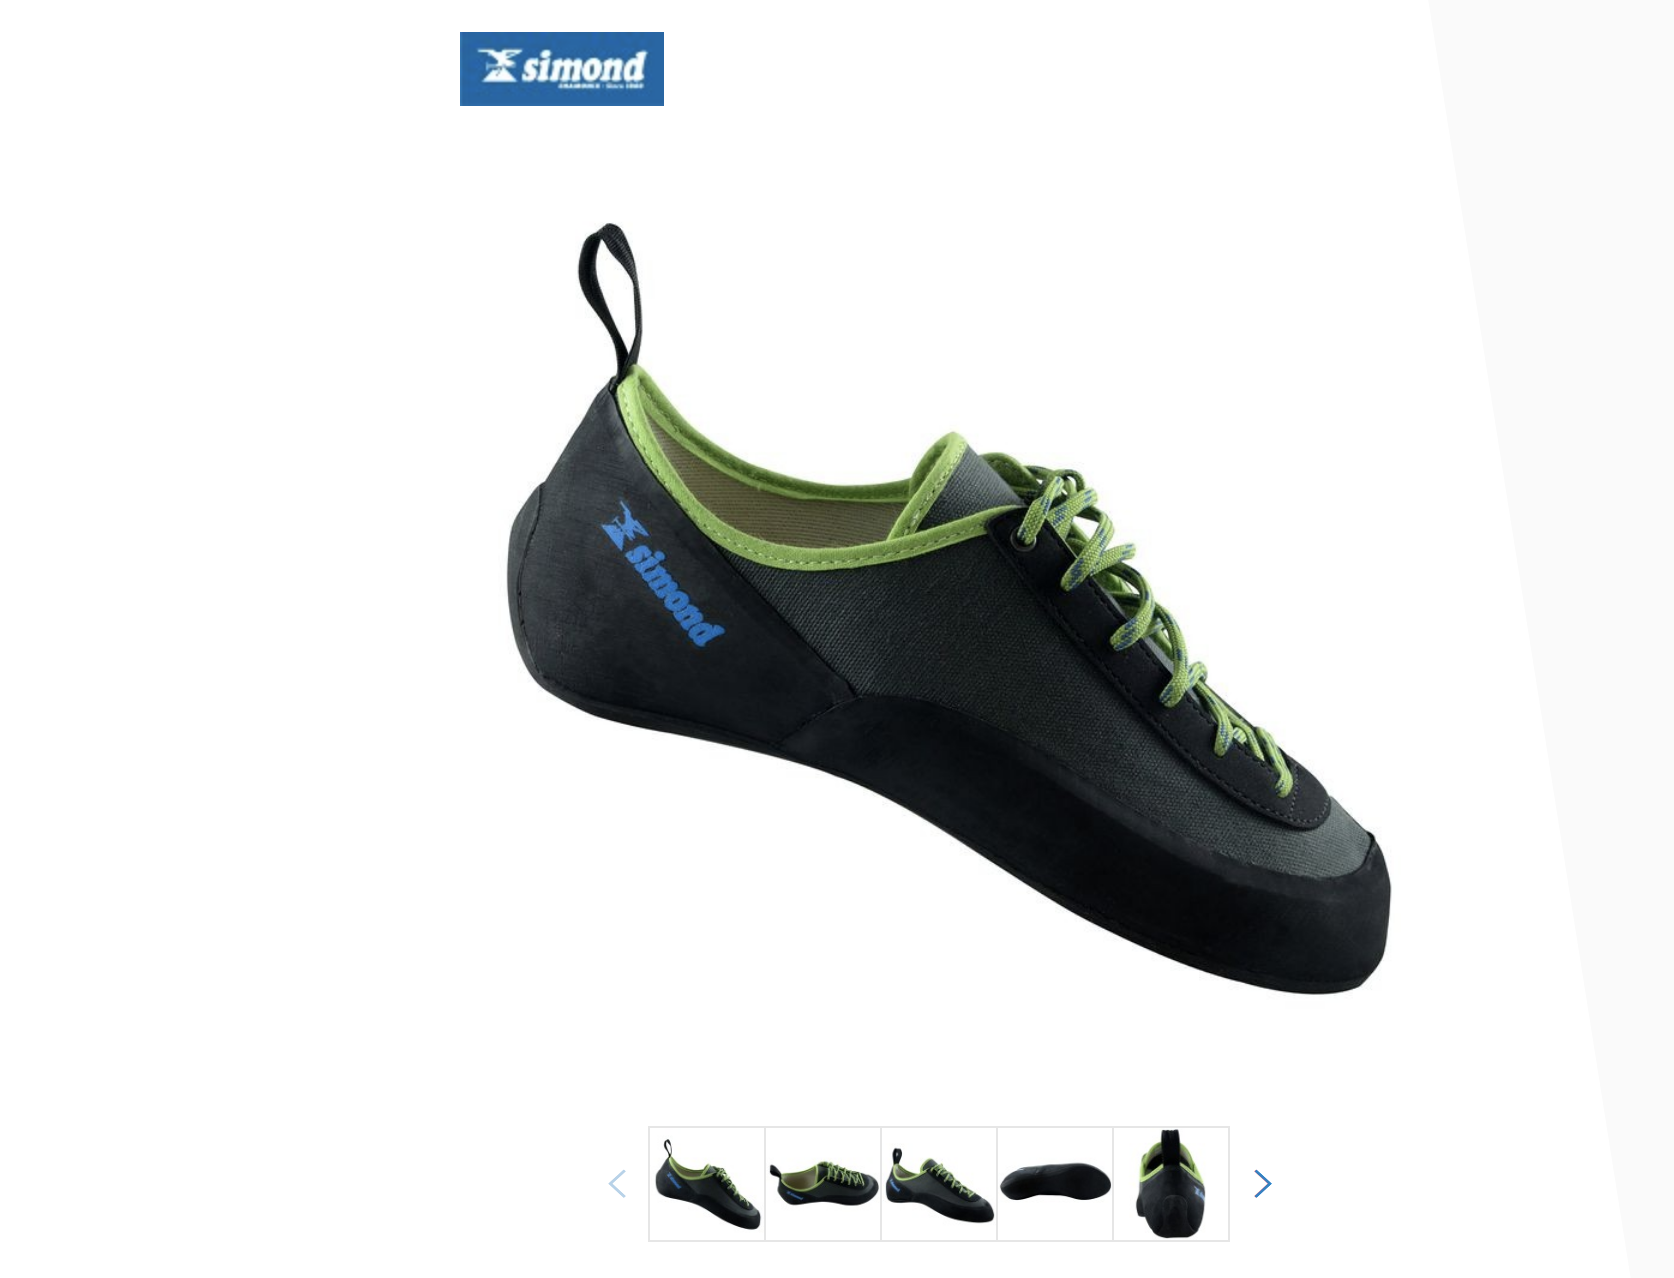 f72ff114daf Discount Sports Retailer Decathlon returns to America, but is it ...